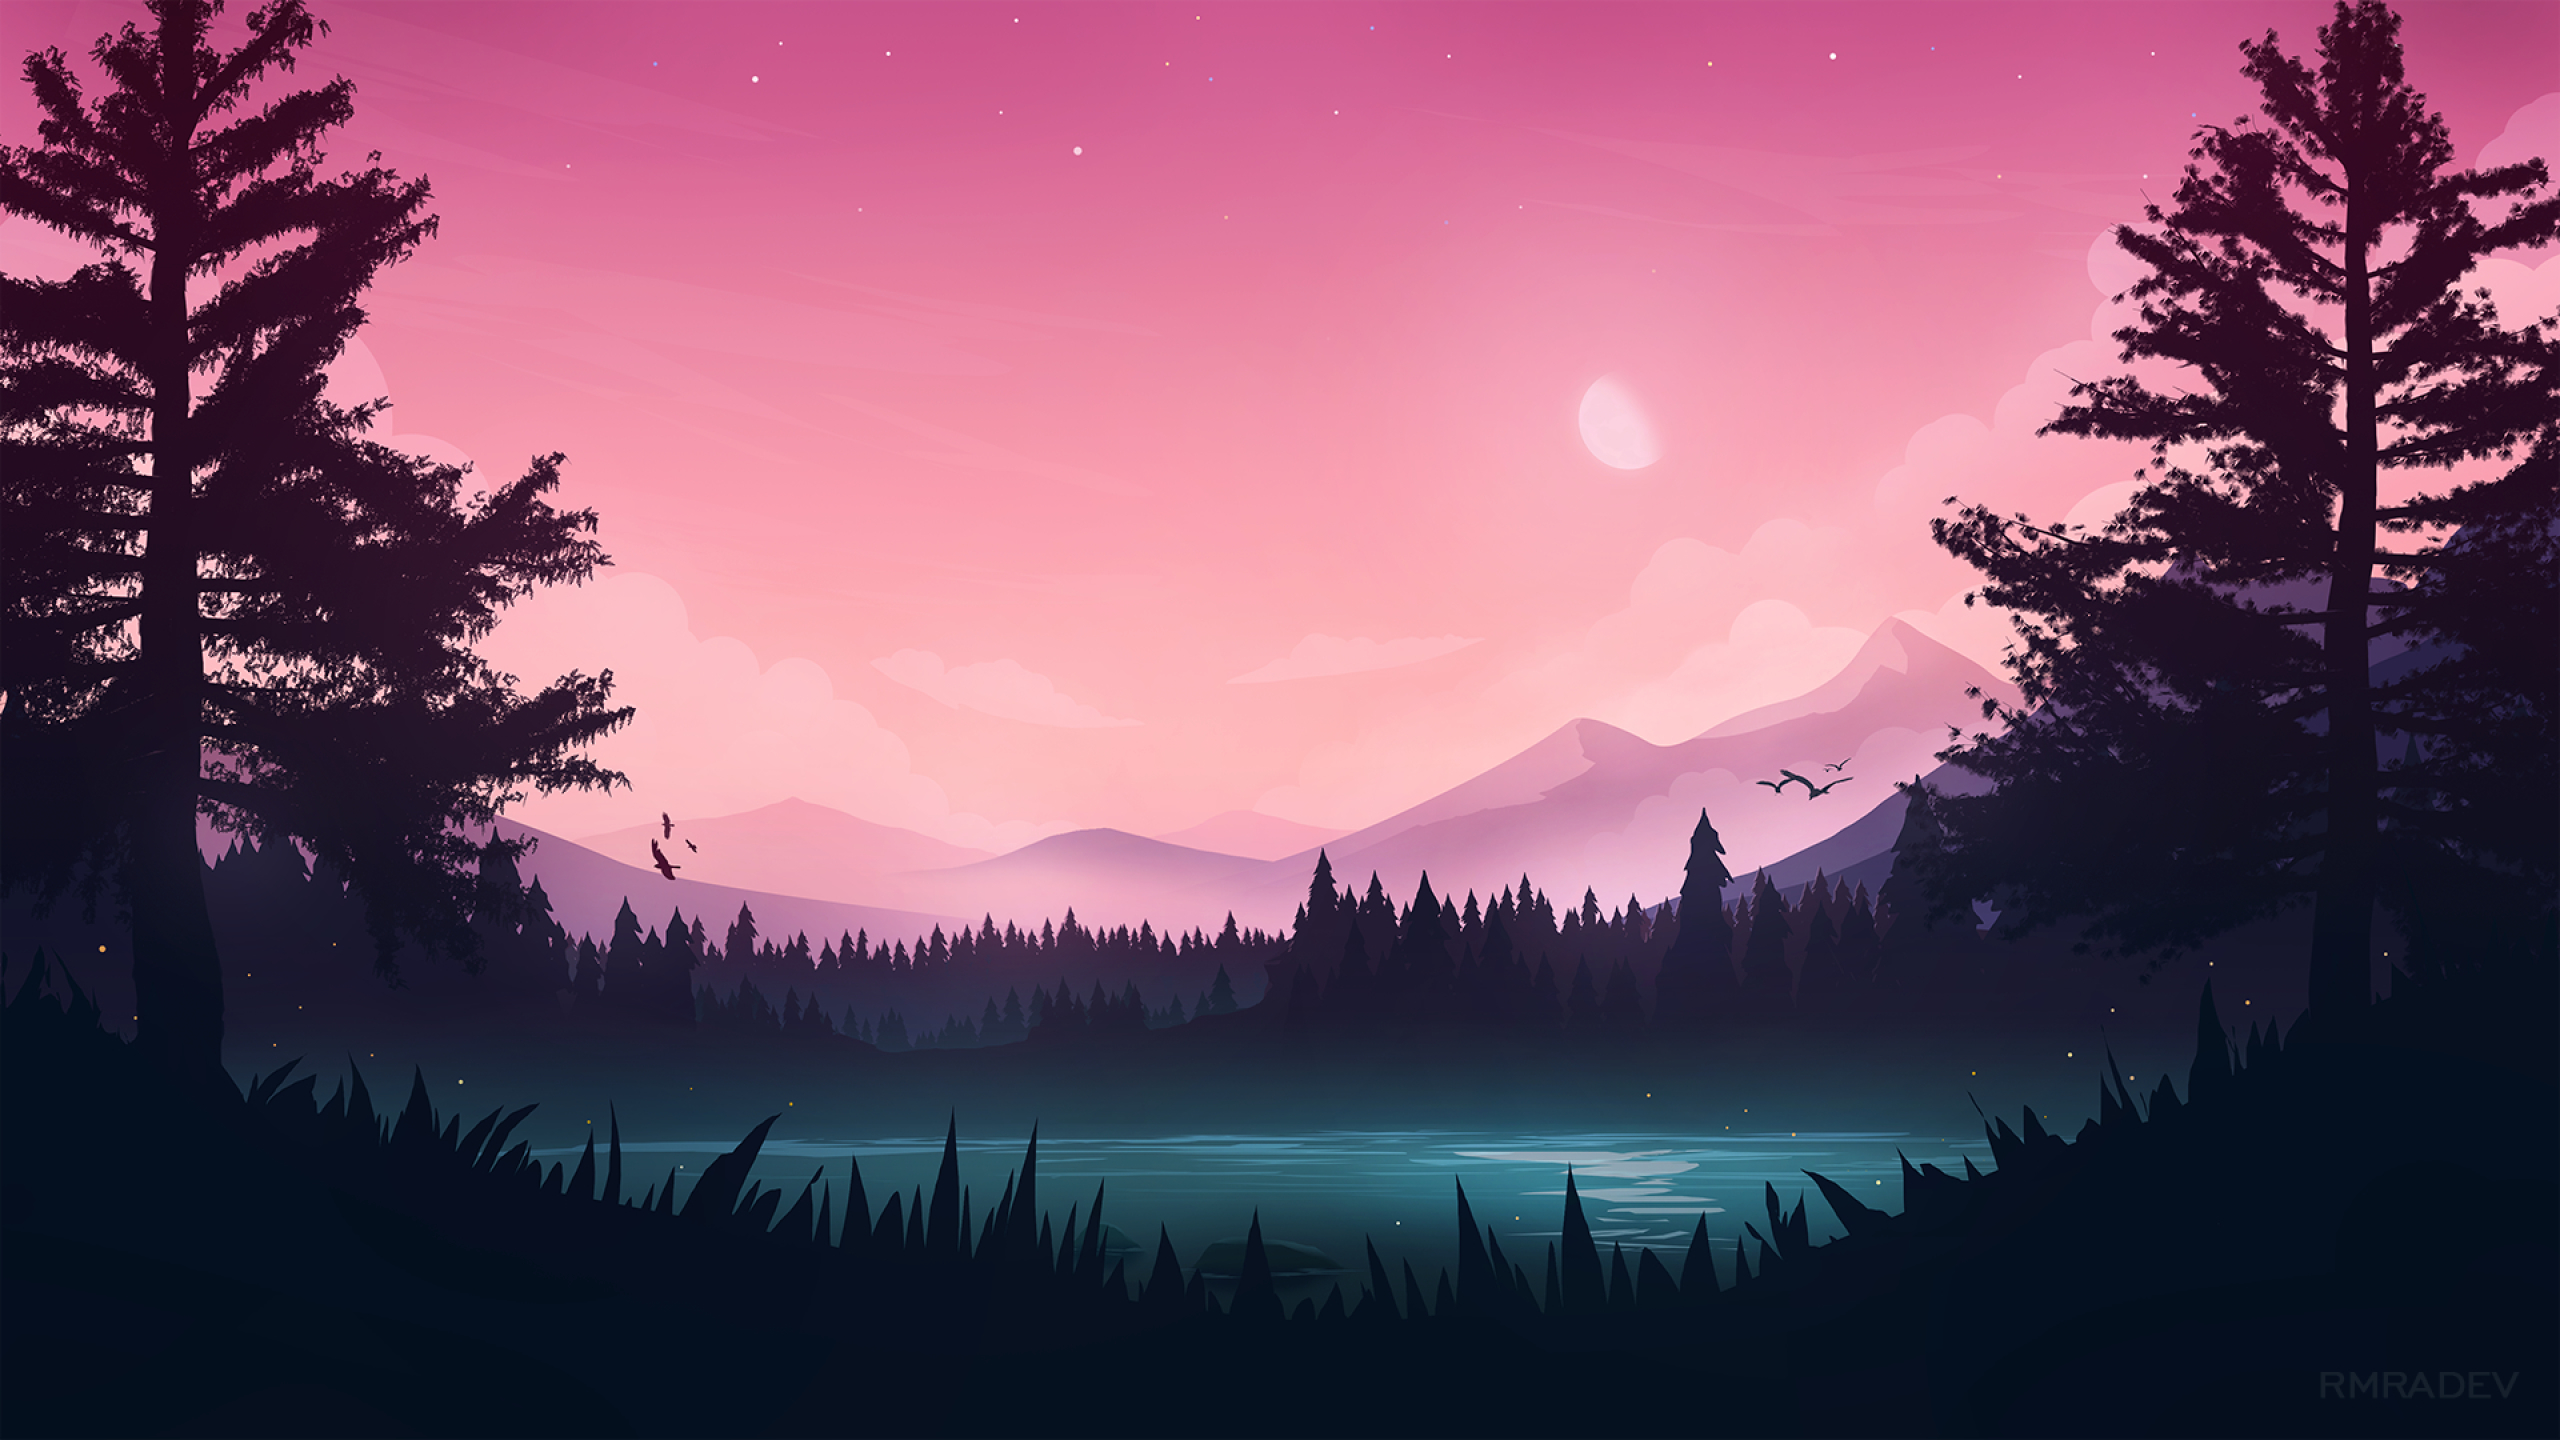 2560x1440 Artistic Landscape View 1440p Resolution Wallpaper Hd Artist 4k Wallpapers Images Photos And Background Wallpapers Den